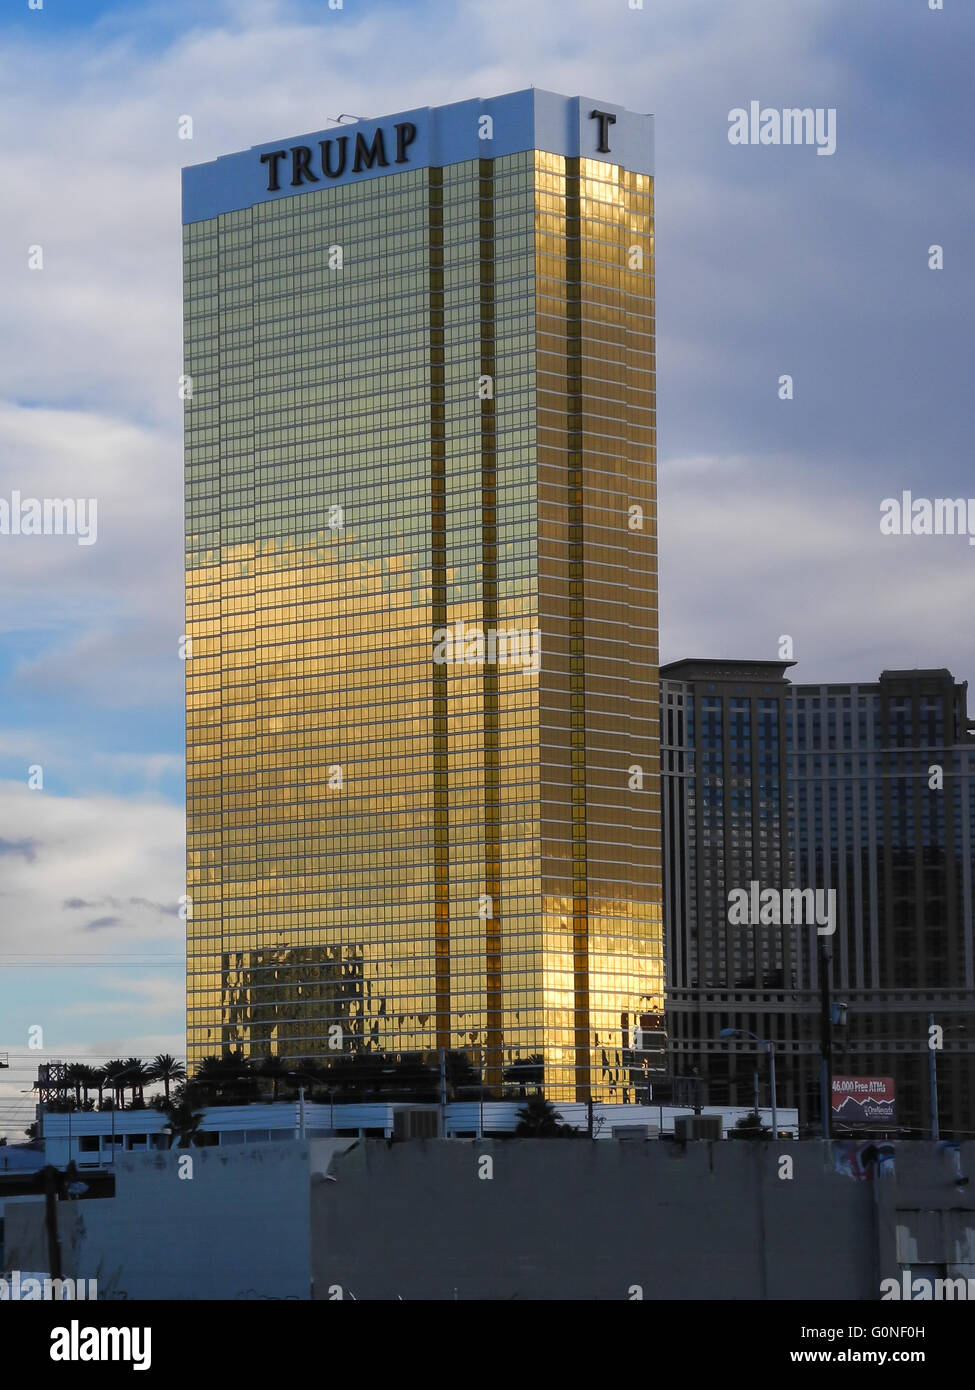 The Trump Tower in Las Vegas, Nevada. The Trump Tower is a prominent, golden landmark owned by famous businessman - Stock Image